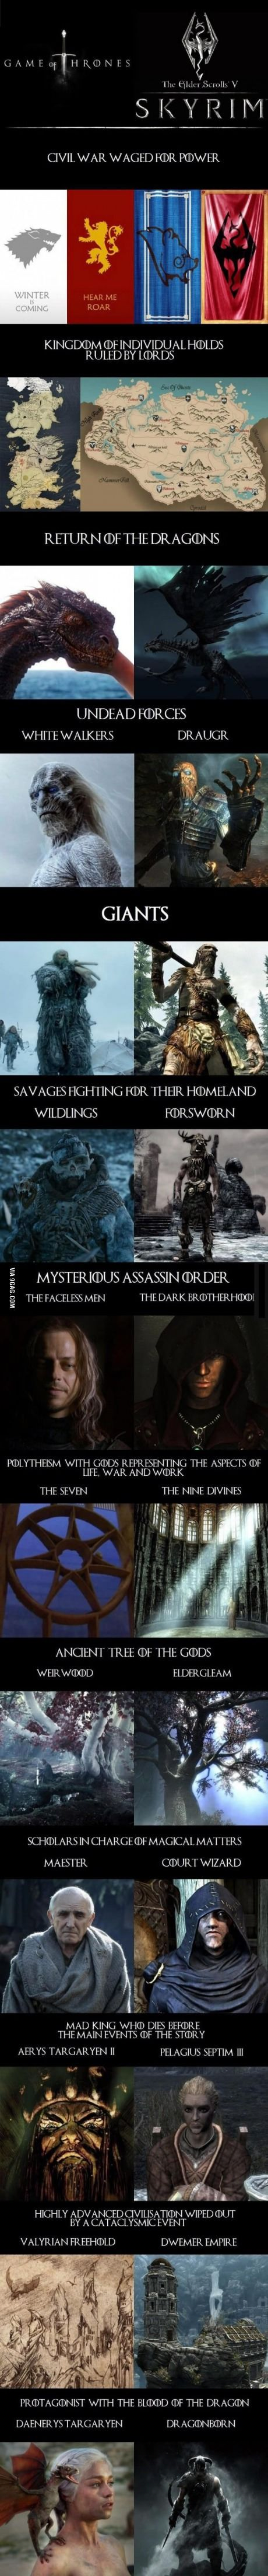 Game Of Thrones Is Just Like Skyrim